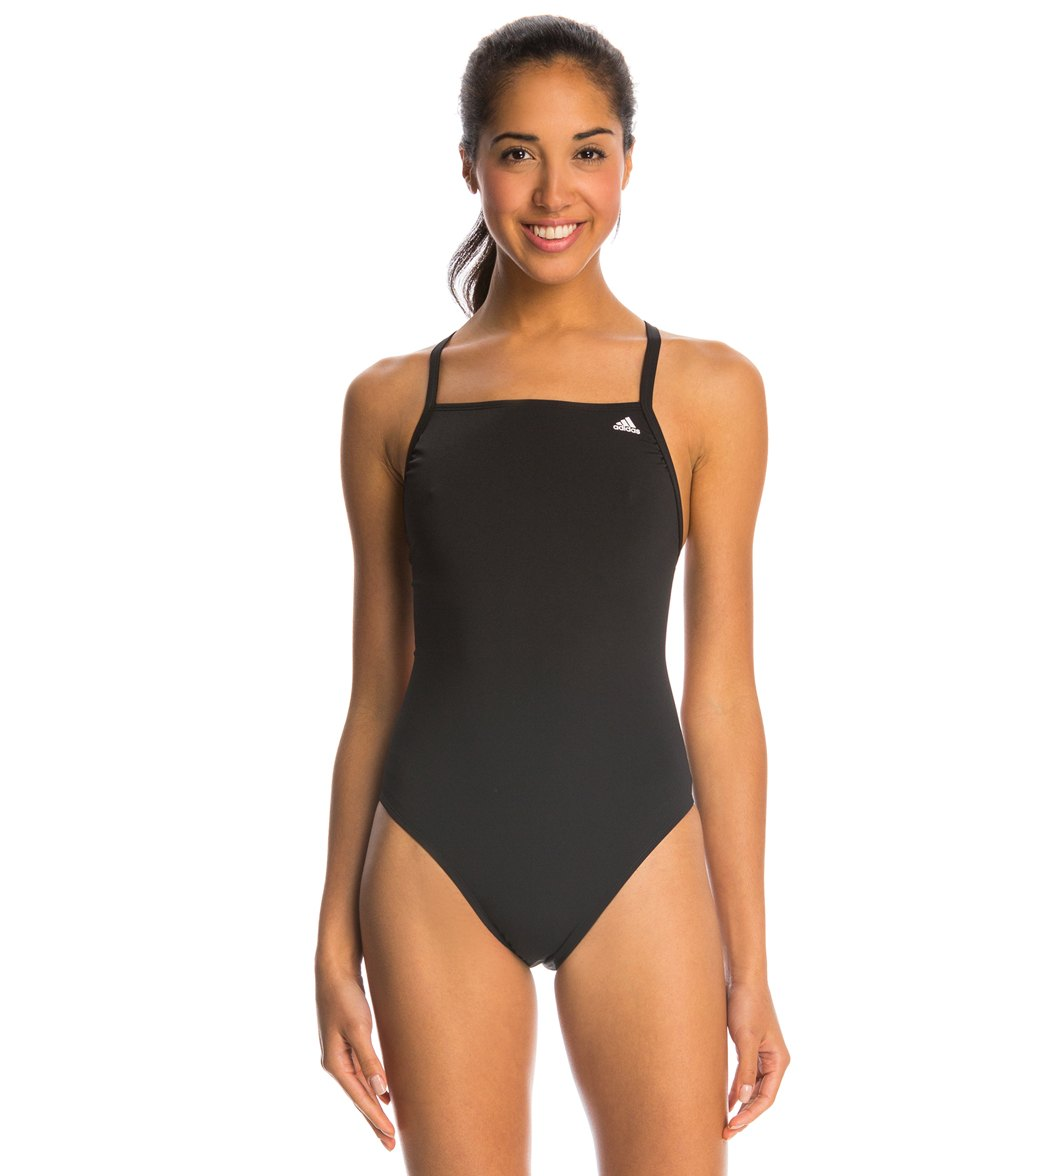 Adidas Women's Infinitex + Solids Vortex Back One Piece Swimsuit - Black 38 Polyester/Pbt - Swimoutlet.com